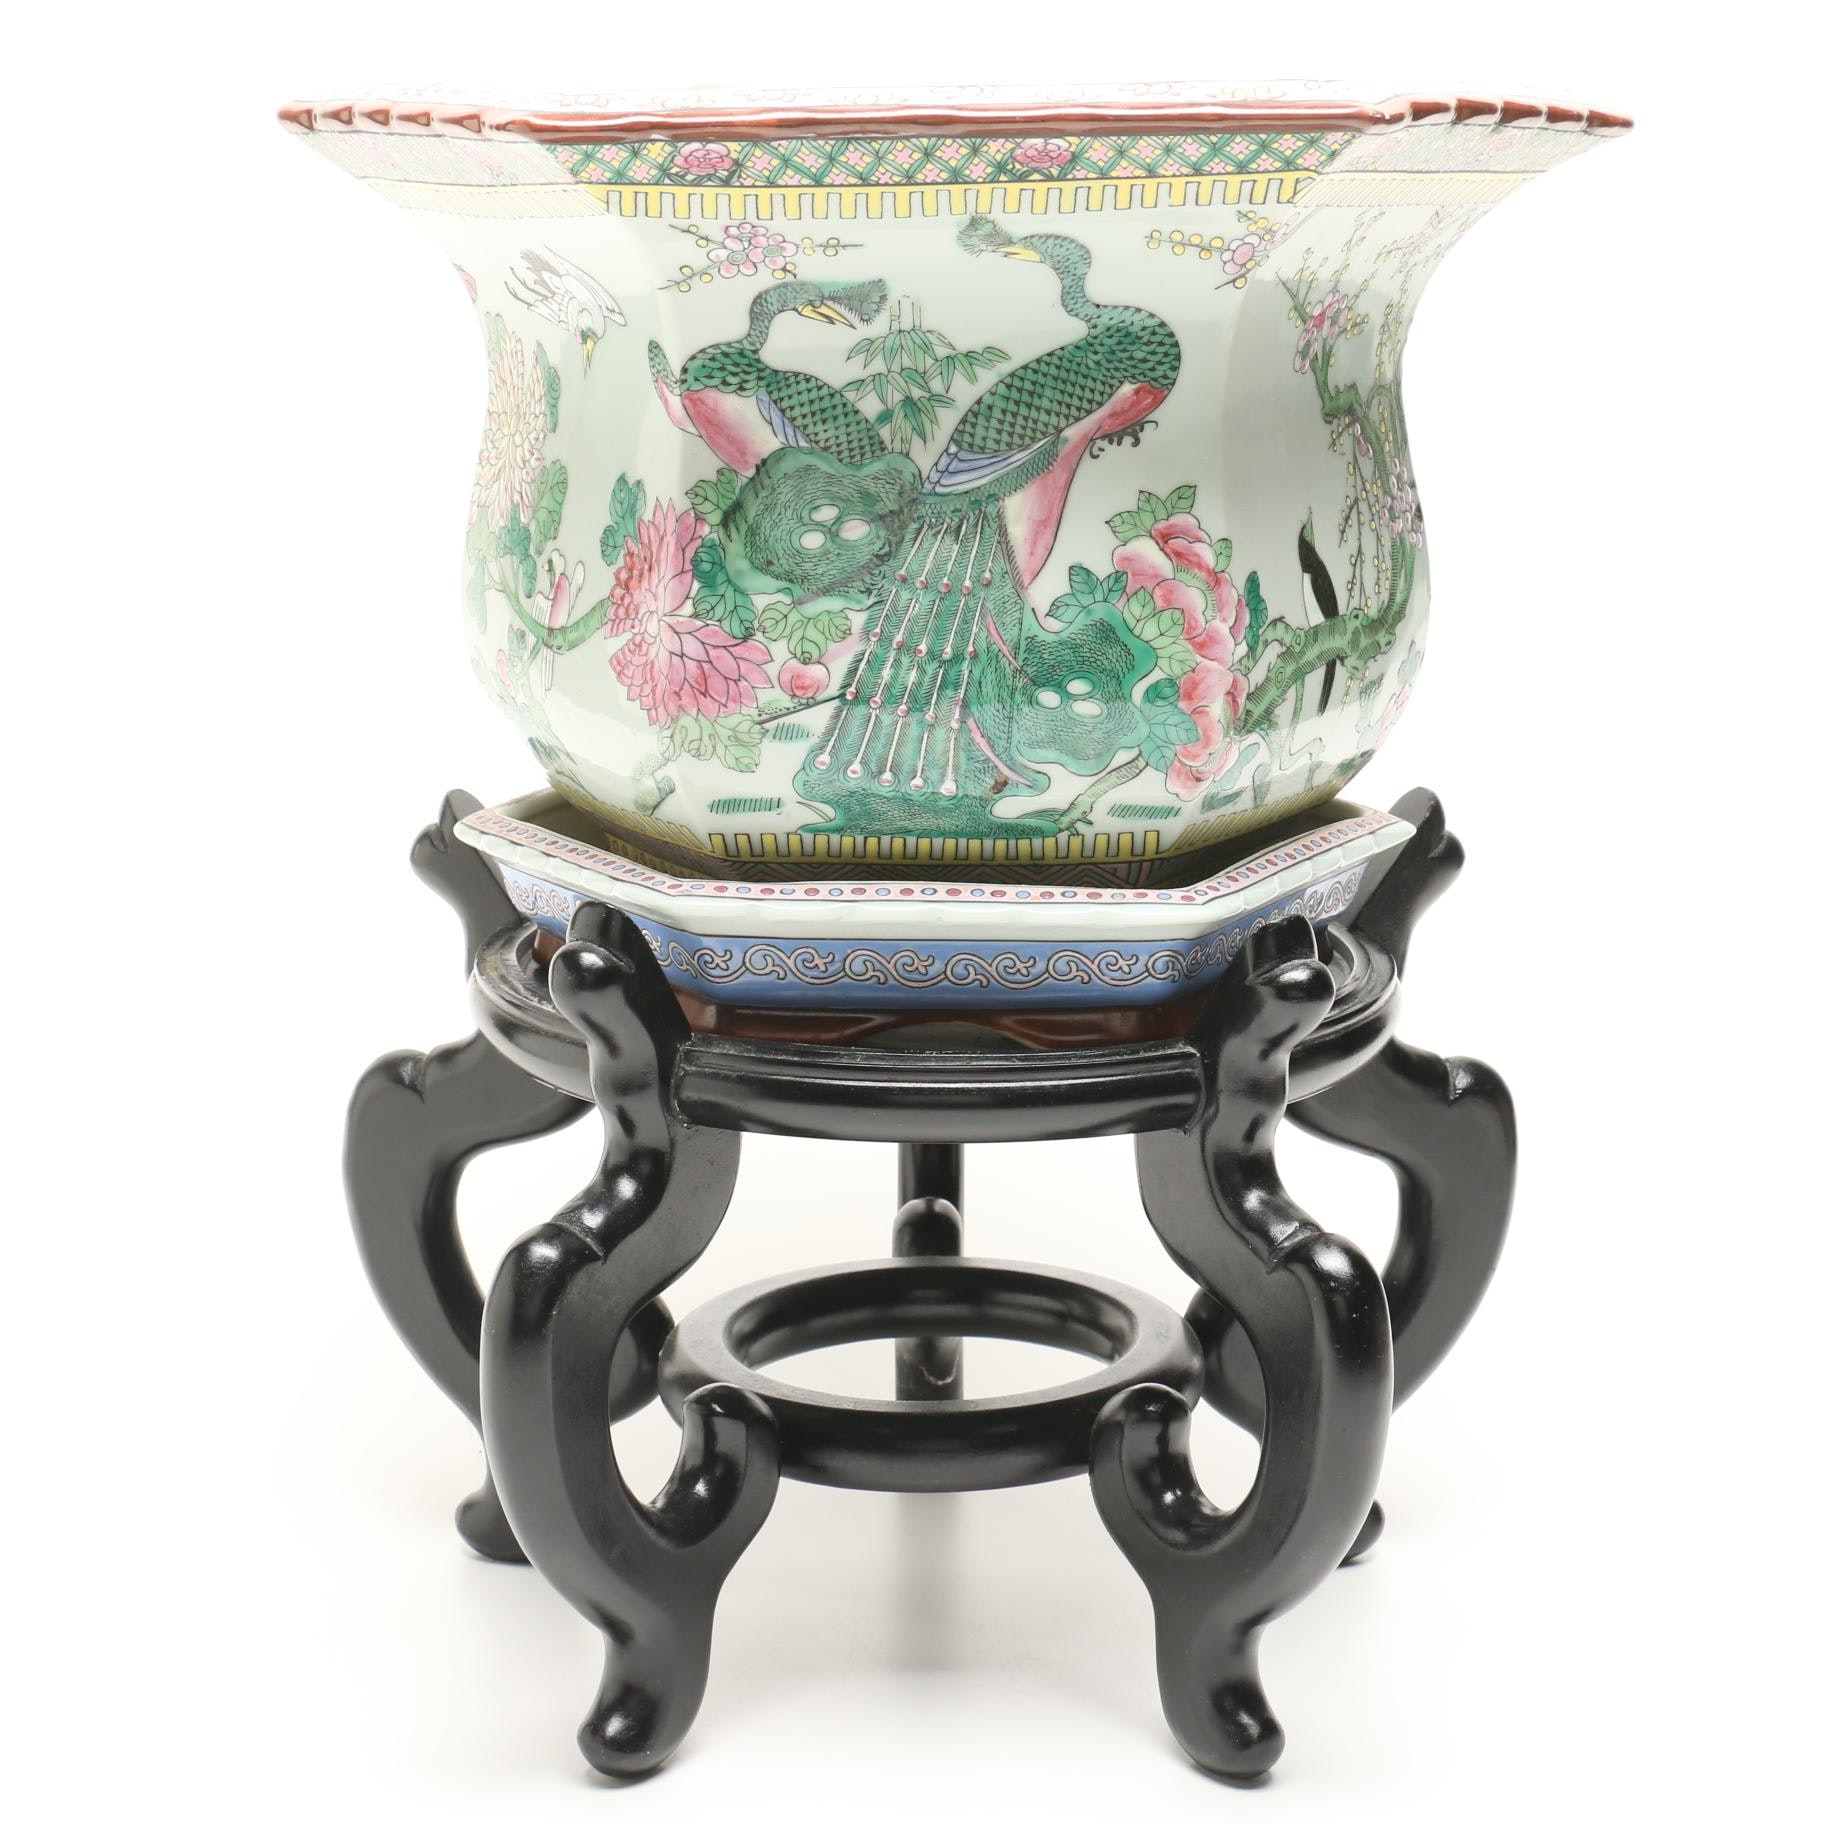 Chinese Ceramic Painted Planter with Drip Dish and Stand